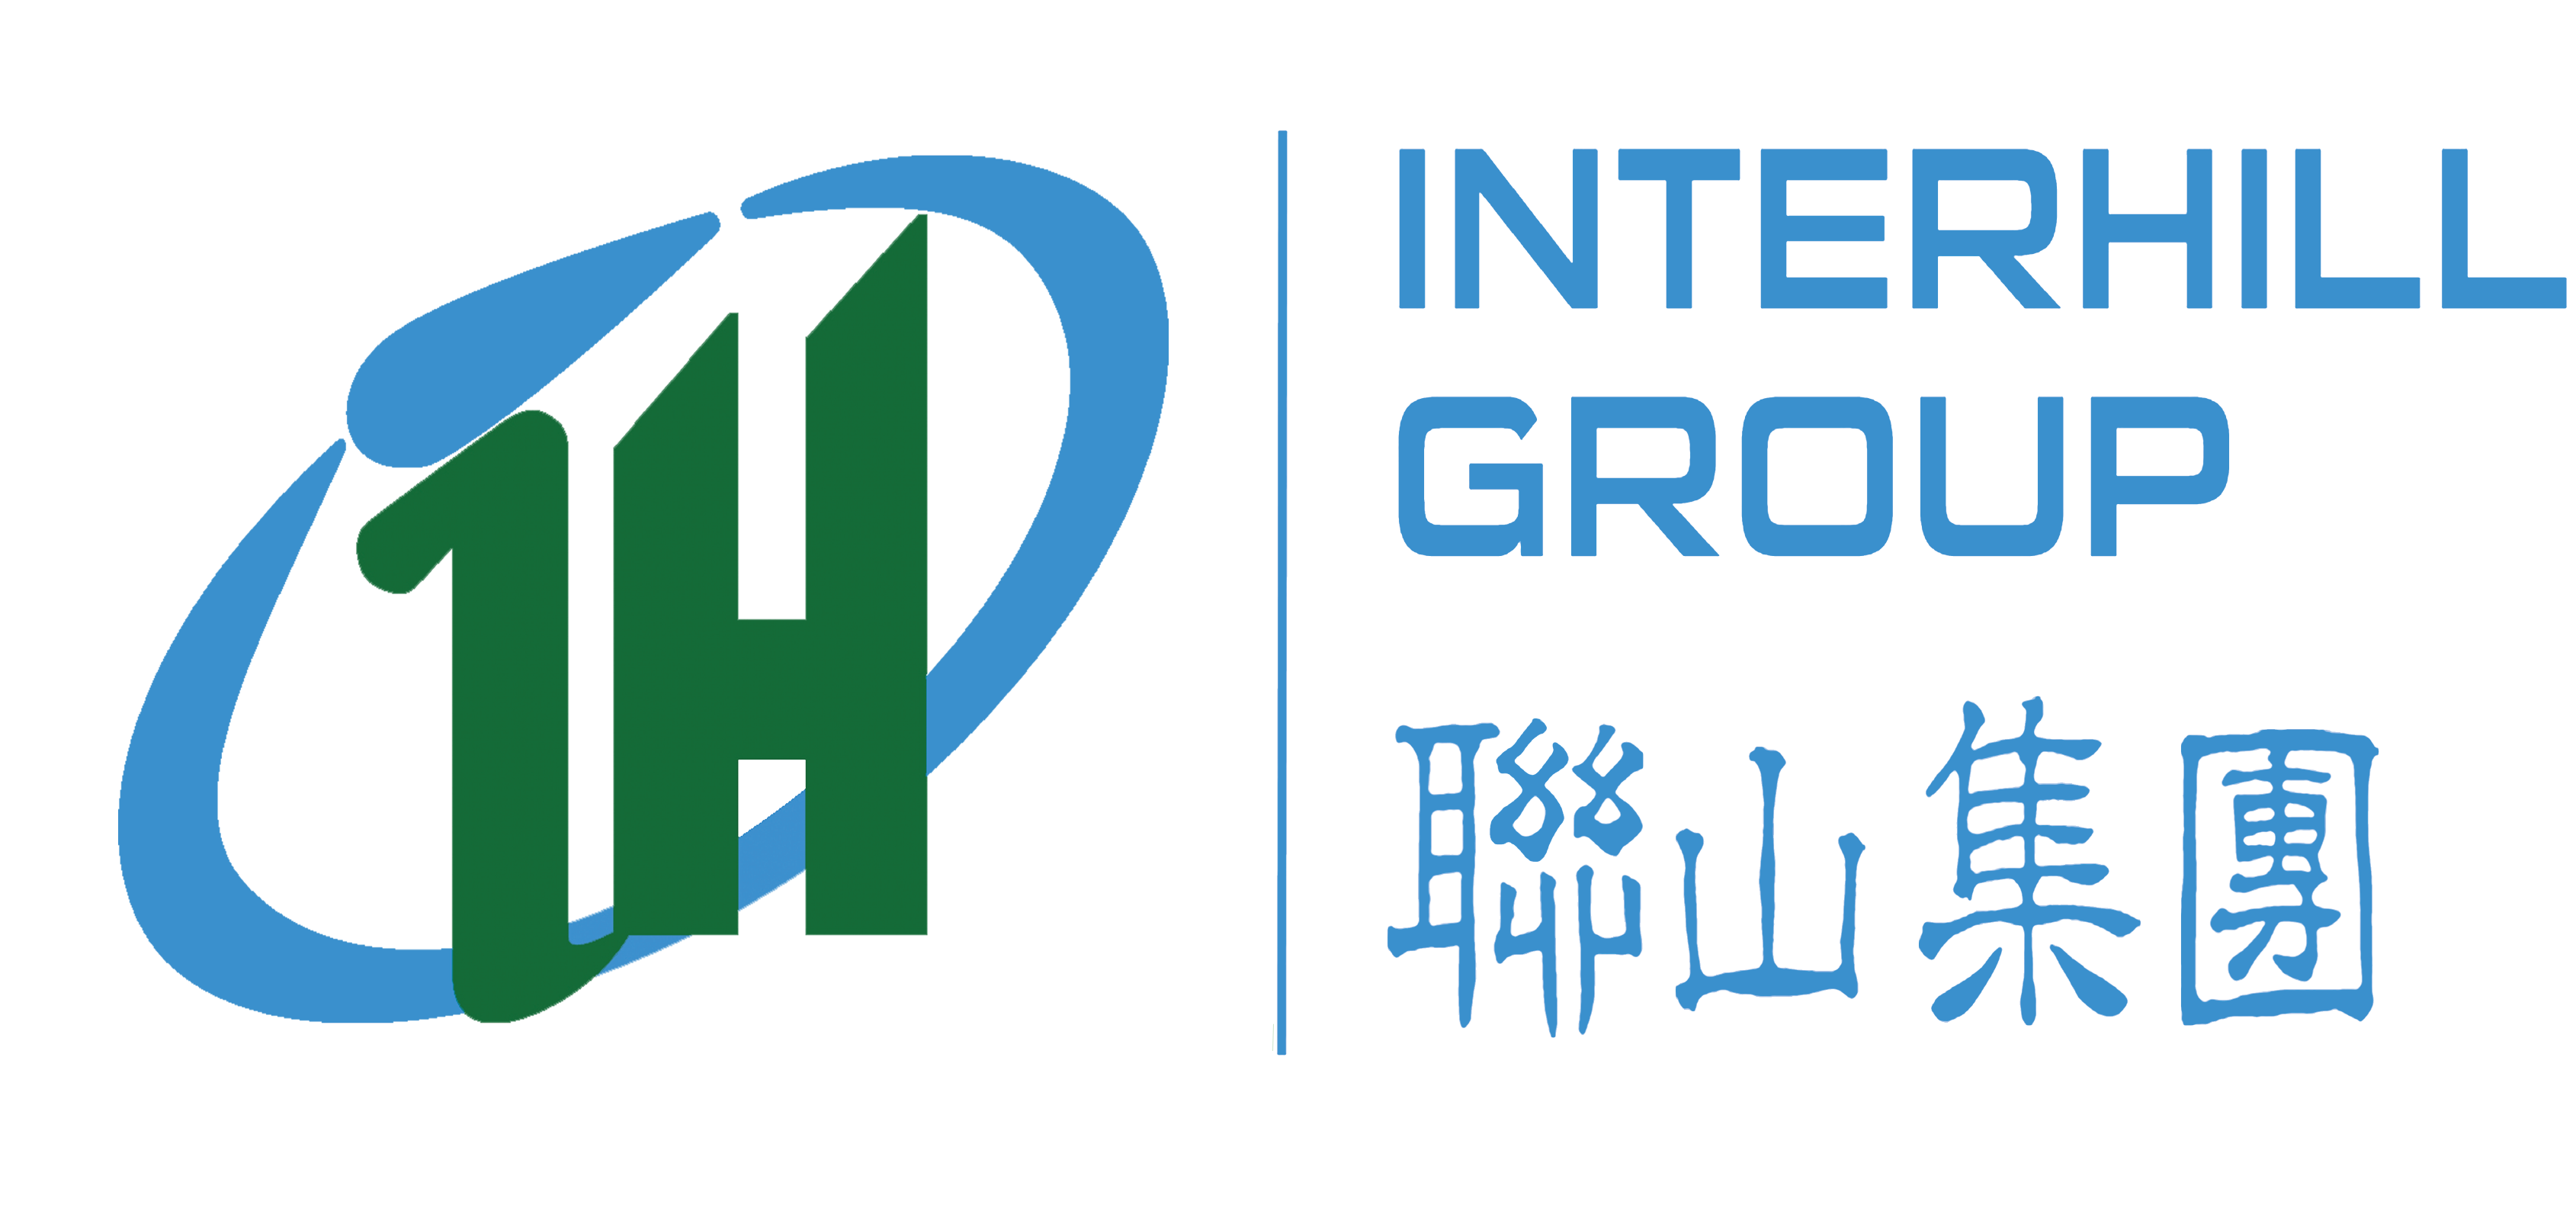 InterhillGroup